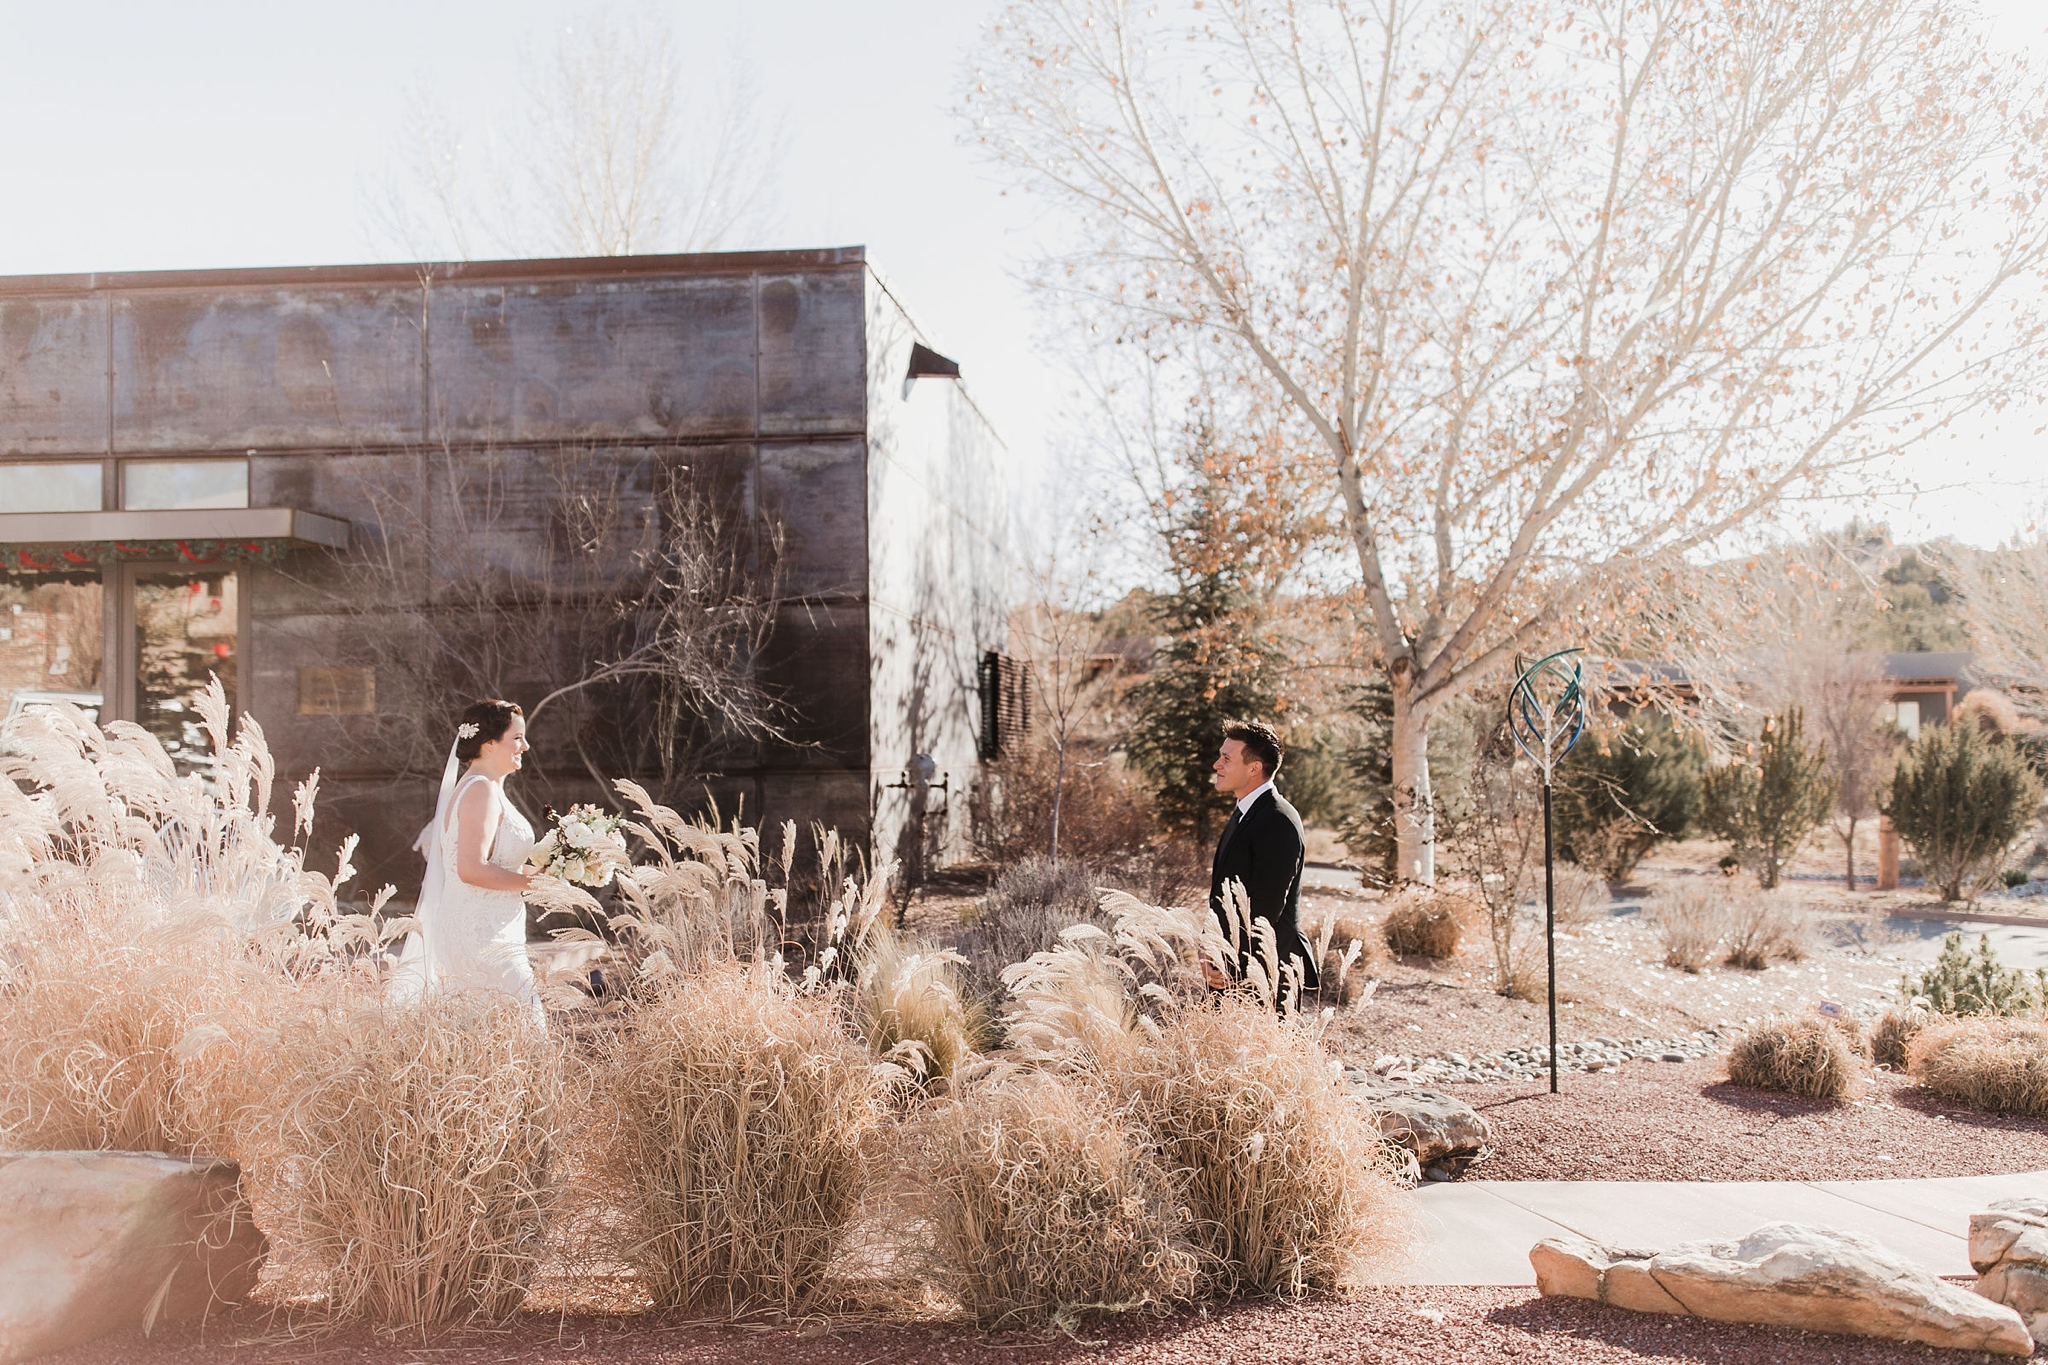 Alicia+lucia+photography+-+albuquerque+wedding+photographer+-+santa+fe+wedding+photography+-+new+mexico+wedding+photographer+-+new+mexico+wedding+-+santa+fe+wedding+-+four+seasons+wedding+-+winter+wedding_0030.jpg